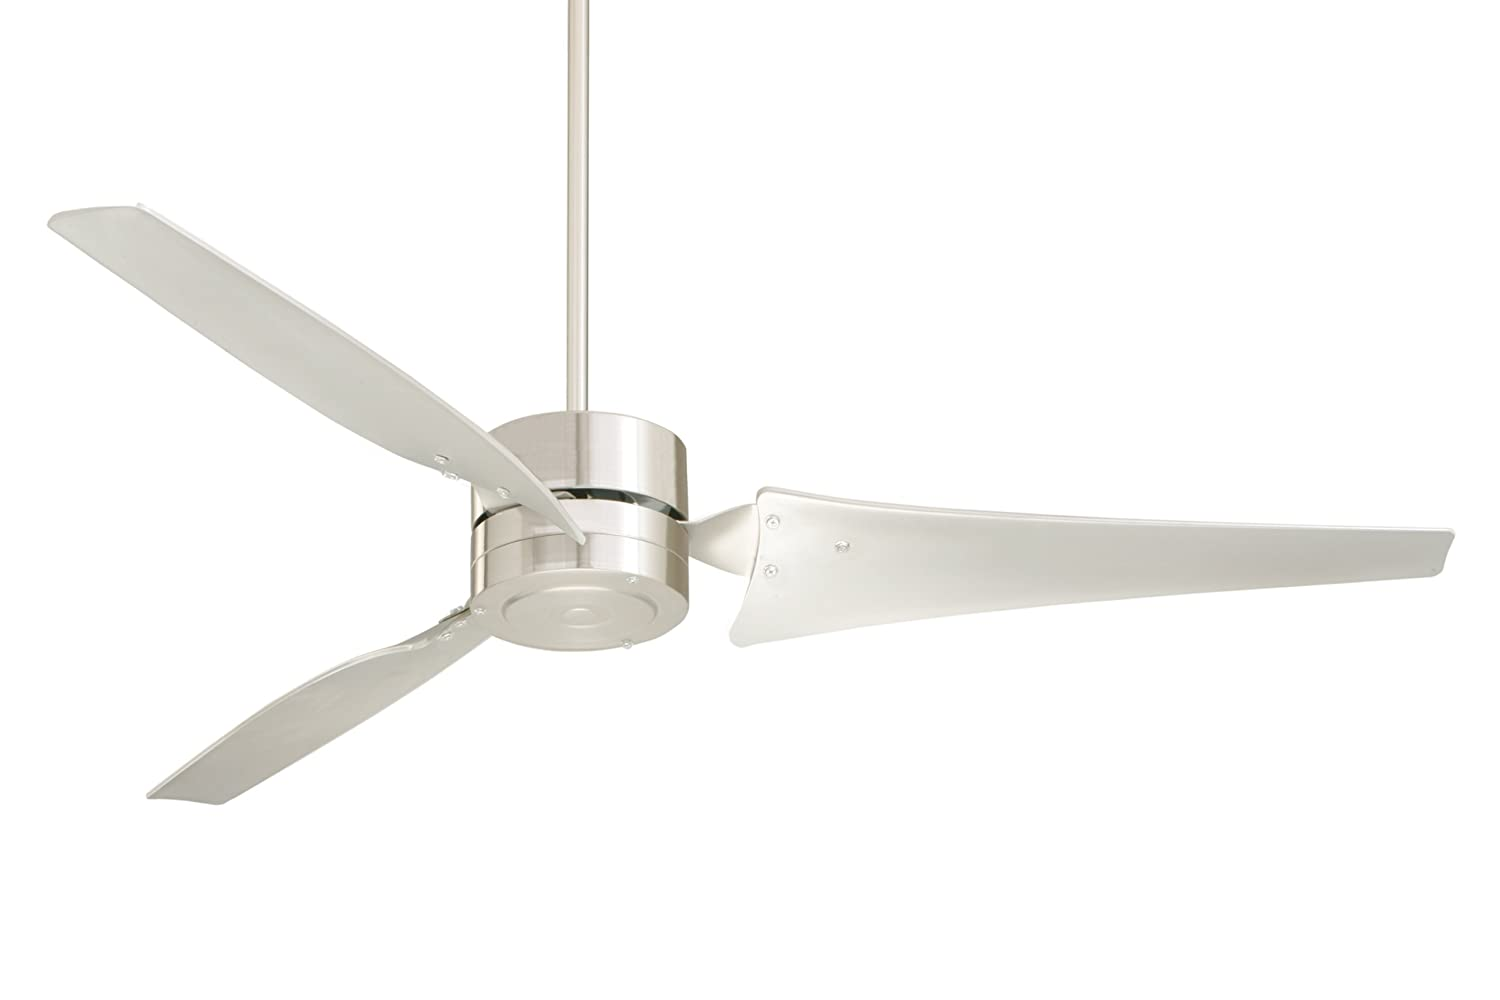 Emerson hf1160ww heat fan indoor ceiling fan 60 inch blade span emerson hf1160ww heat fan indoor ceiling fan 60 inch blade span appliance white finish appliance white blades ceiling fans with lights amazon mozeypictures Choice Image